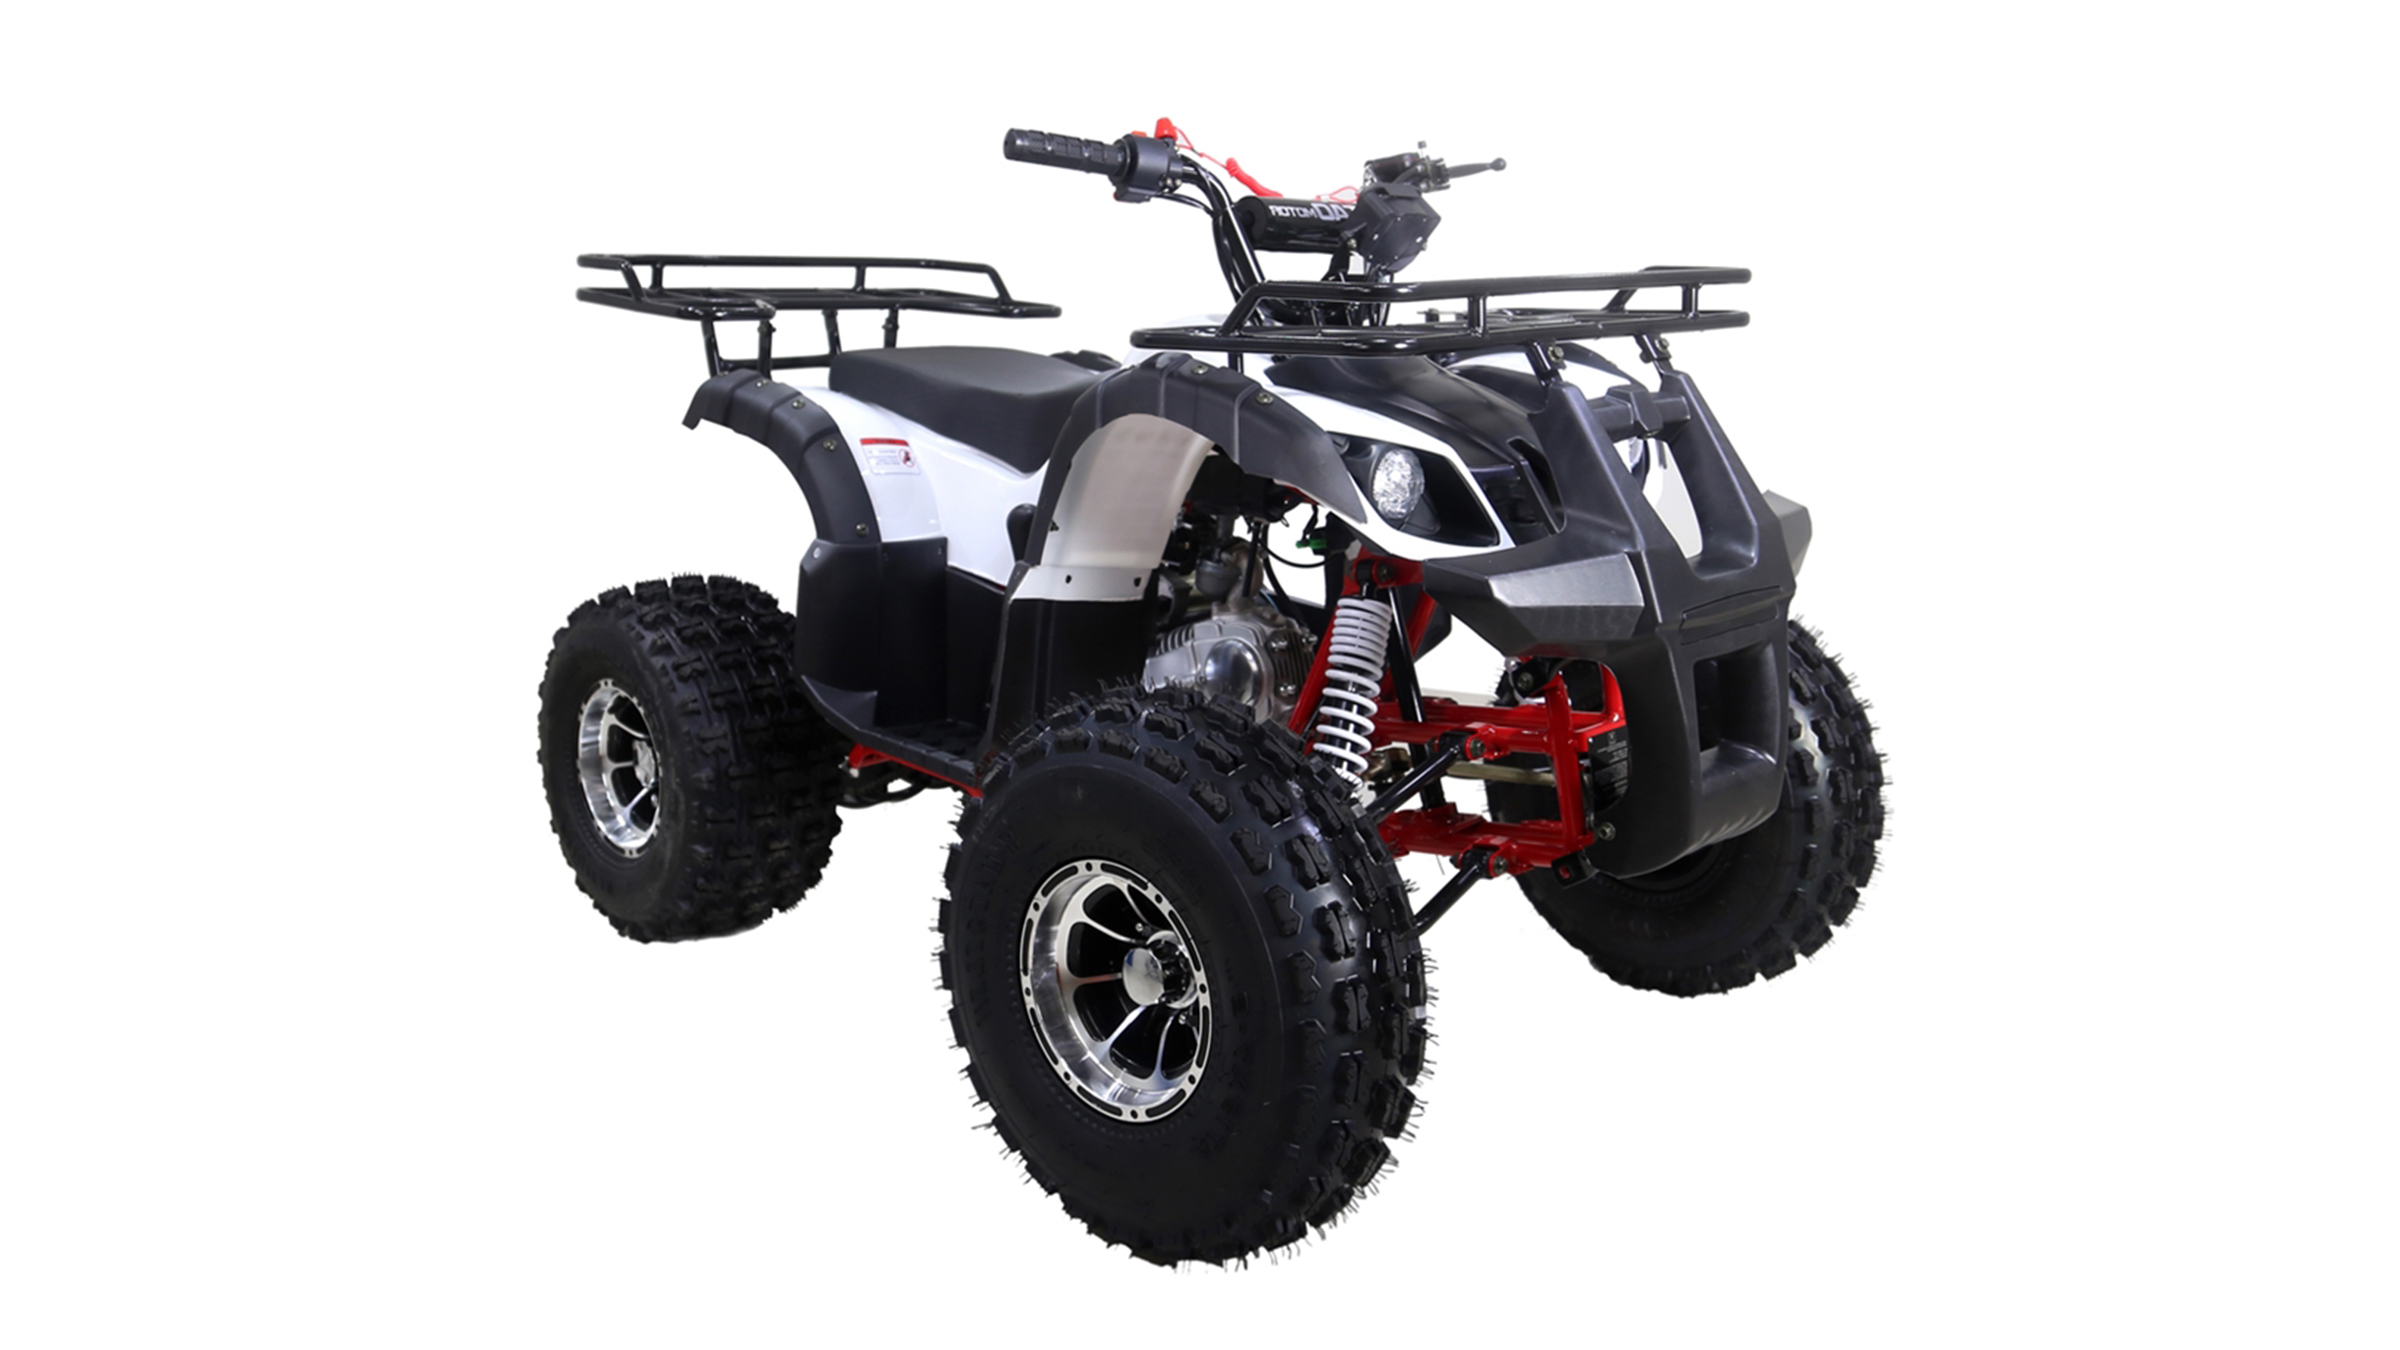 Rent a Yamaha 125cc ATV for Kids